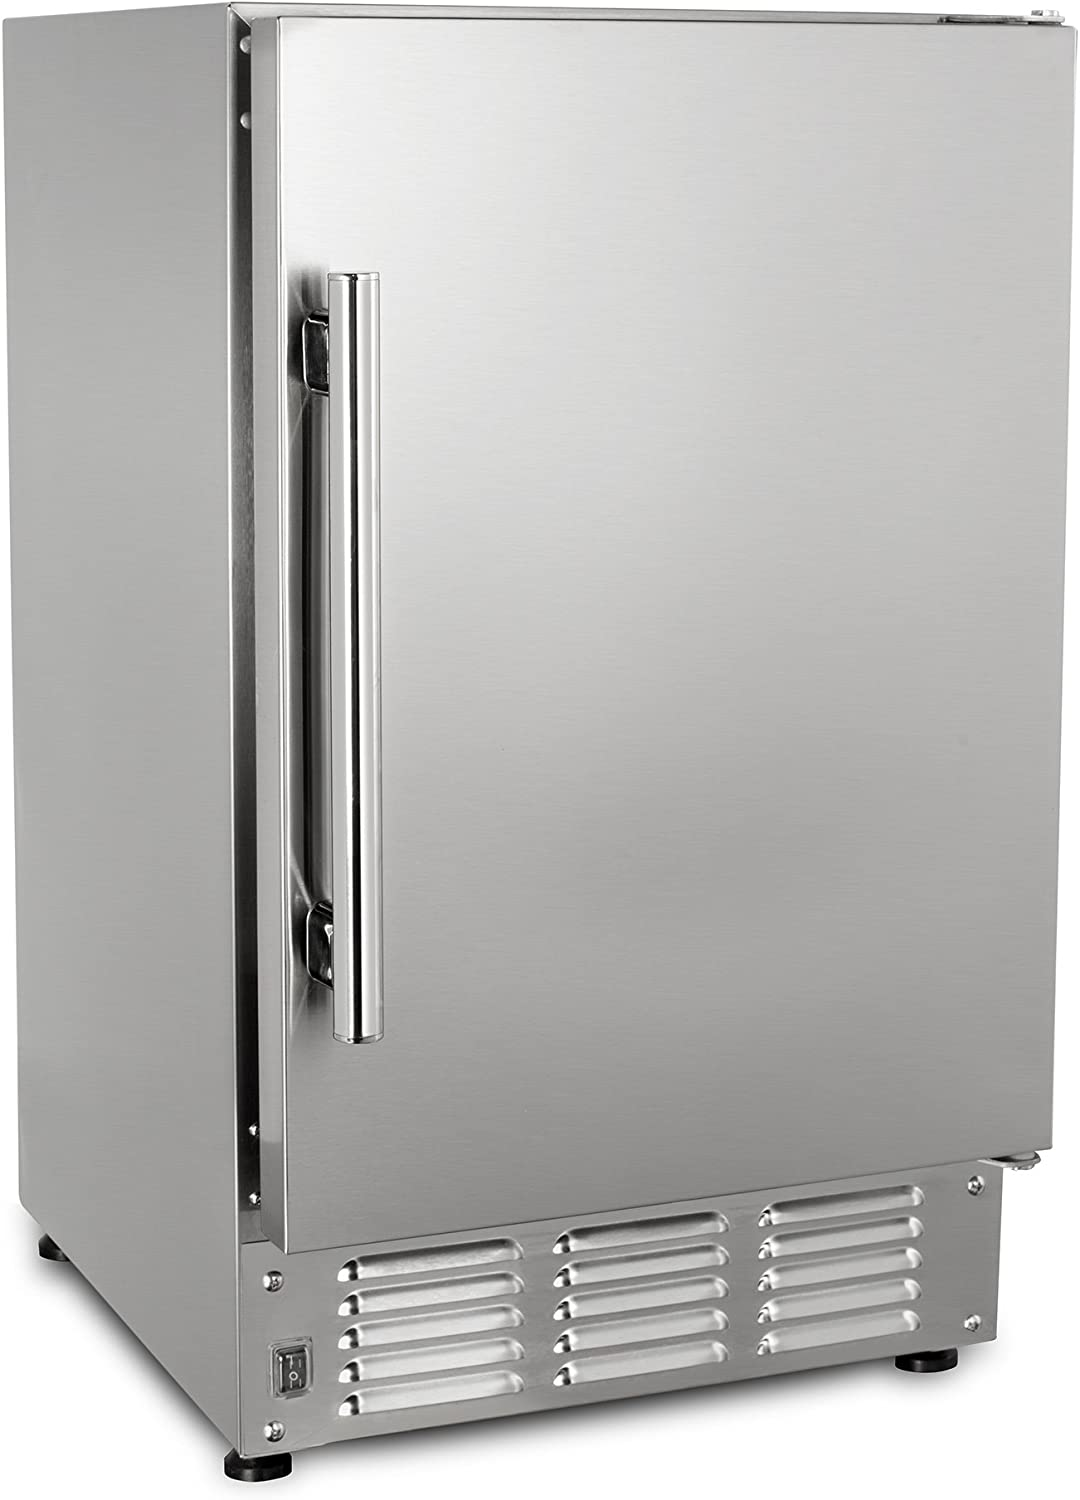 Maxx Ice MIM25-O 14.6 22lb Outdoor and Marine Compact Crescent Ice Maker Stainless Steel Exterior Built-In Undercounter or Countertop, 14.6 Inch Wide, Silver 710LF0-F0sLSL1500_